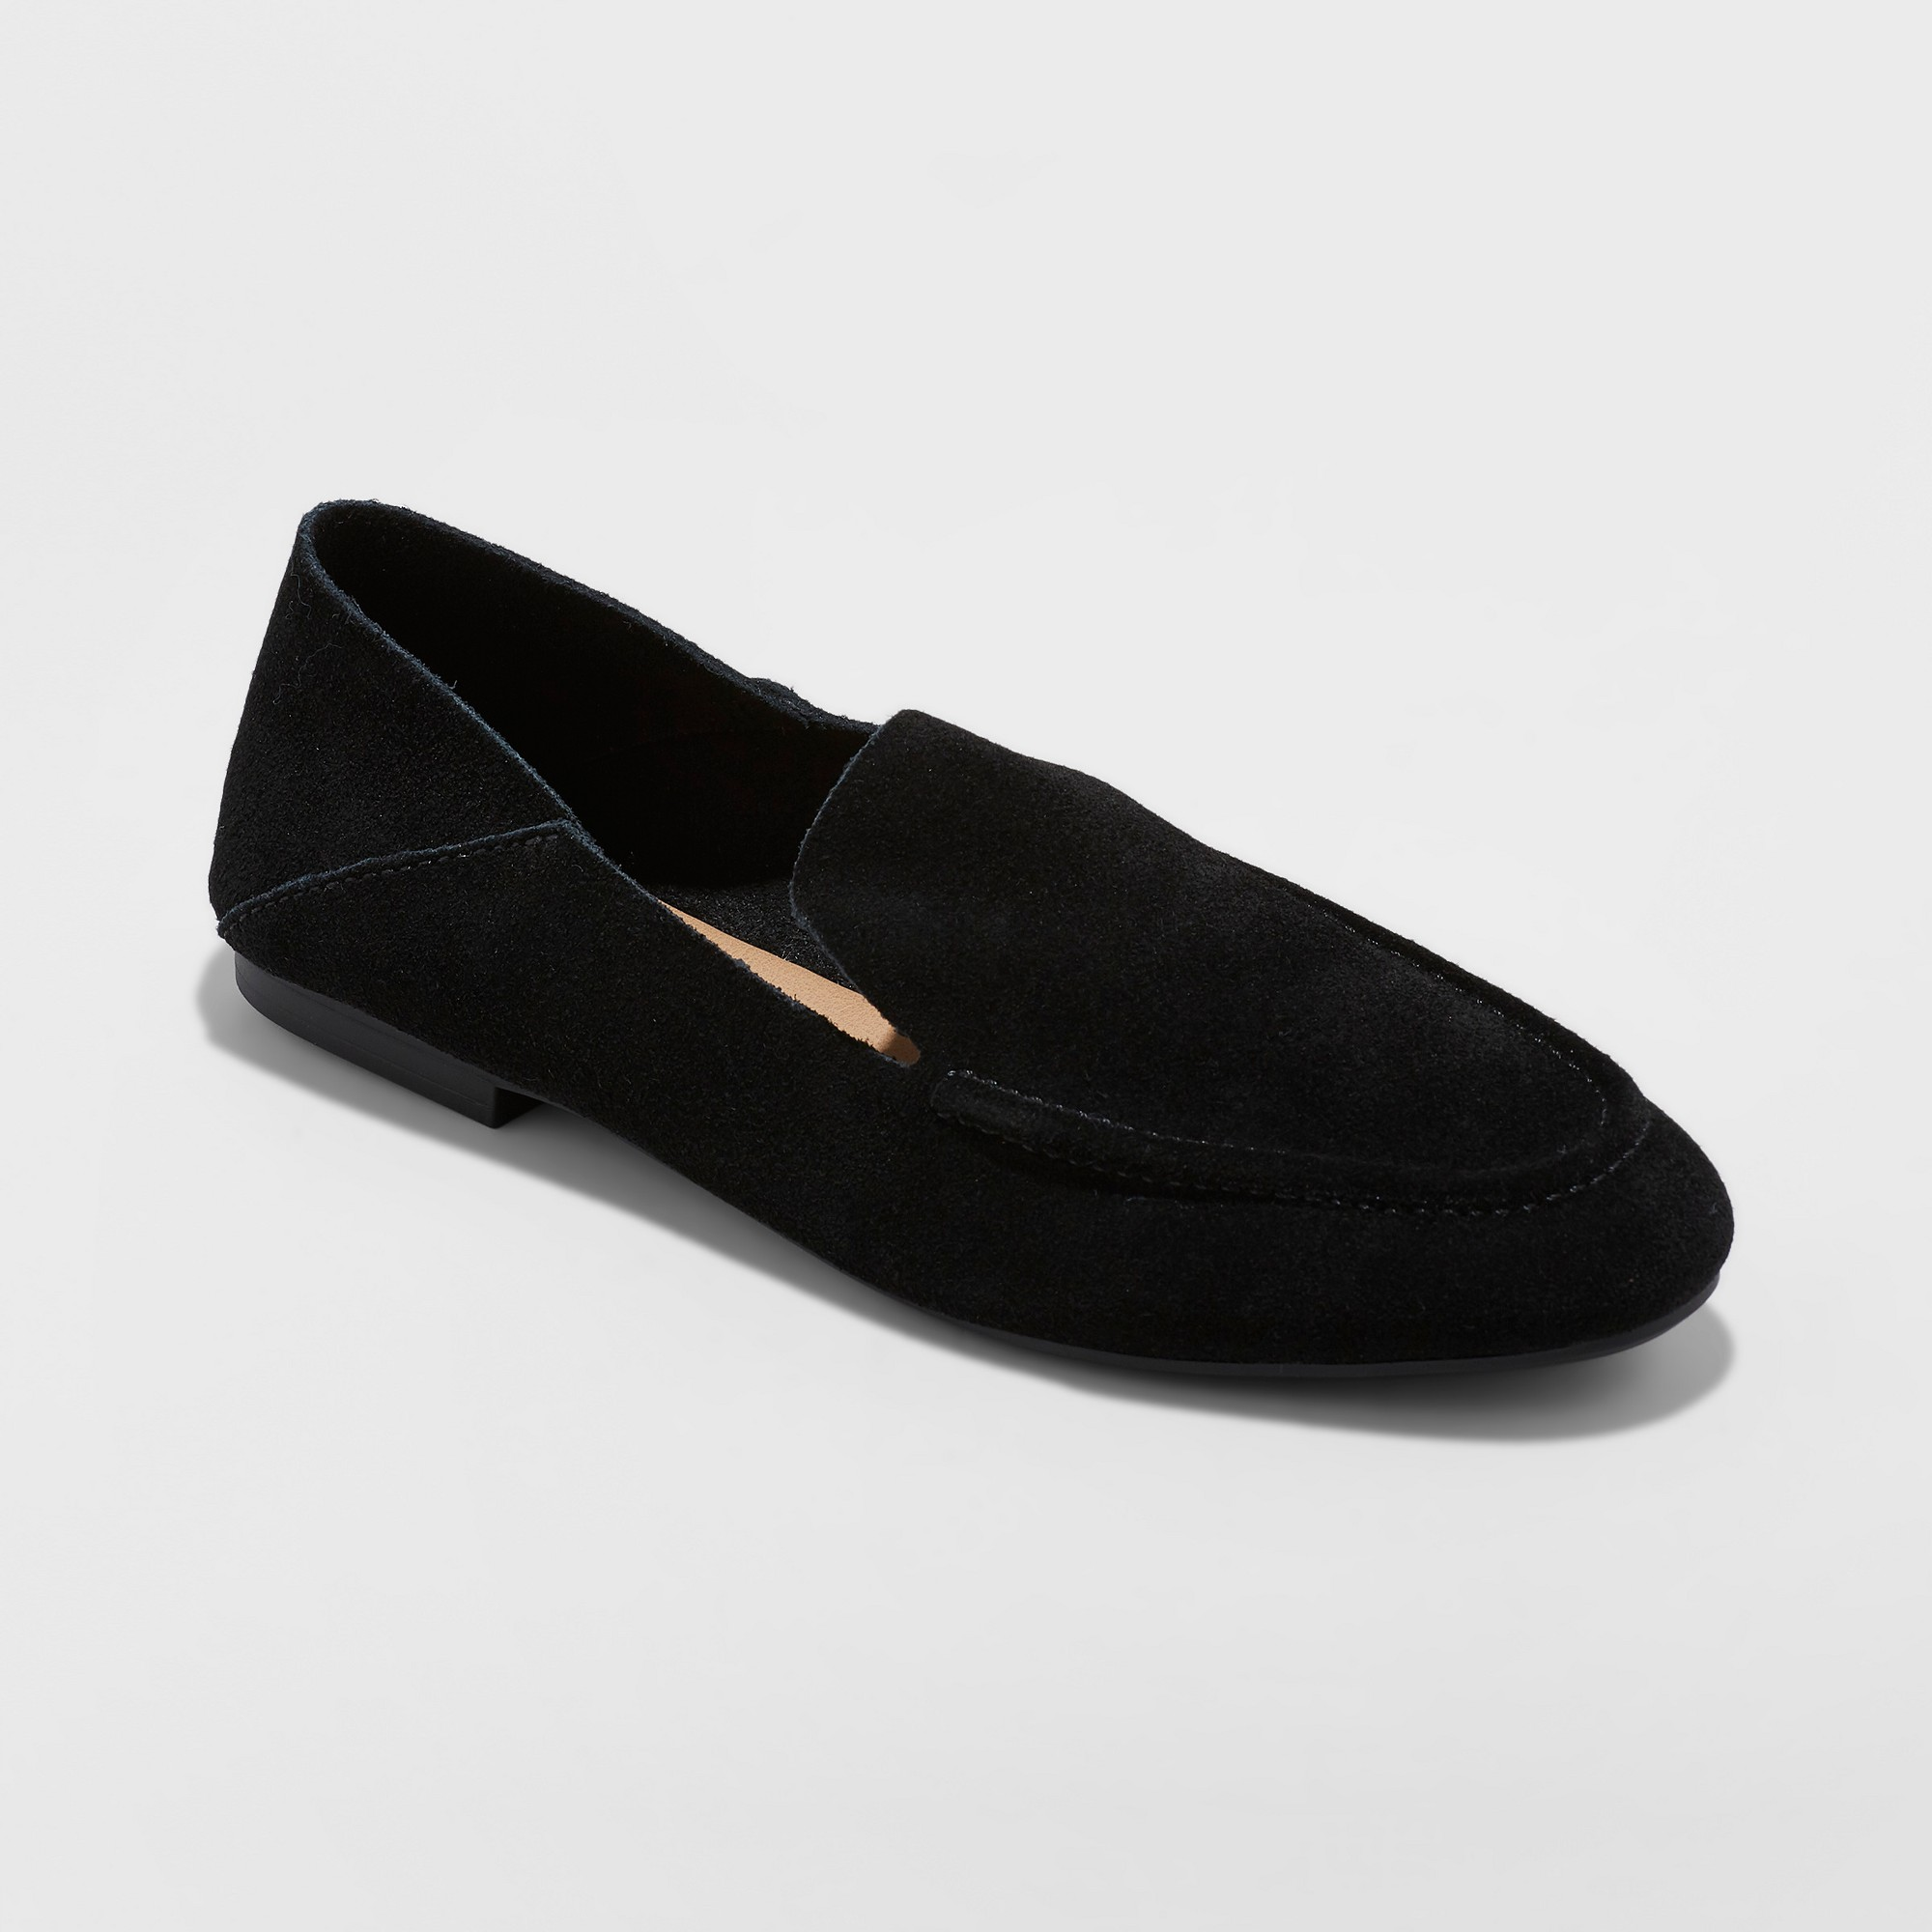 997841f8b Women's Jisela Collapsible Back Loafers - A New Day Black 8.5 ...